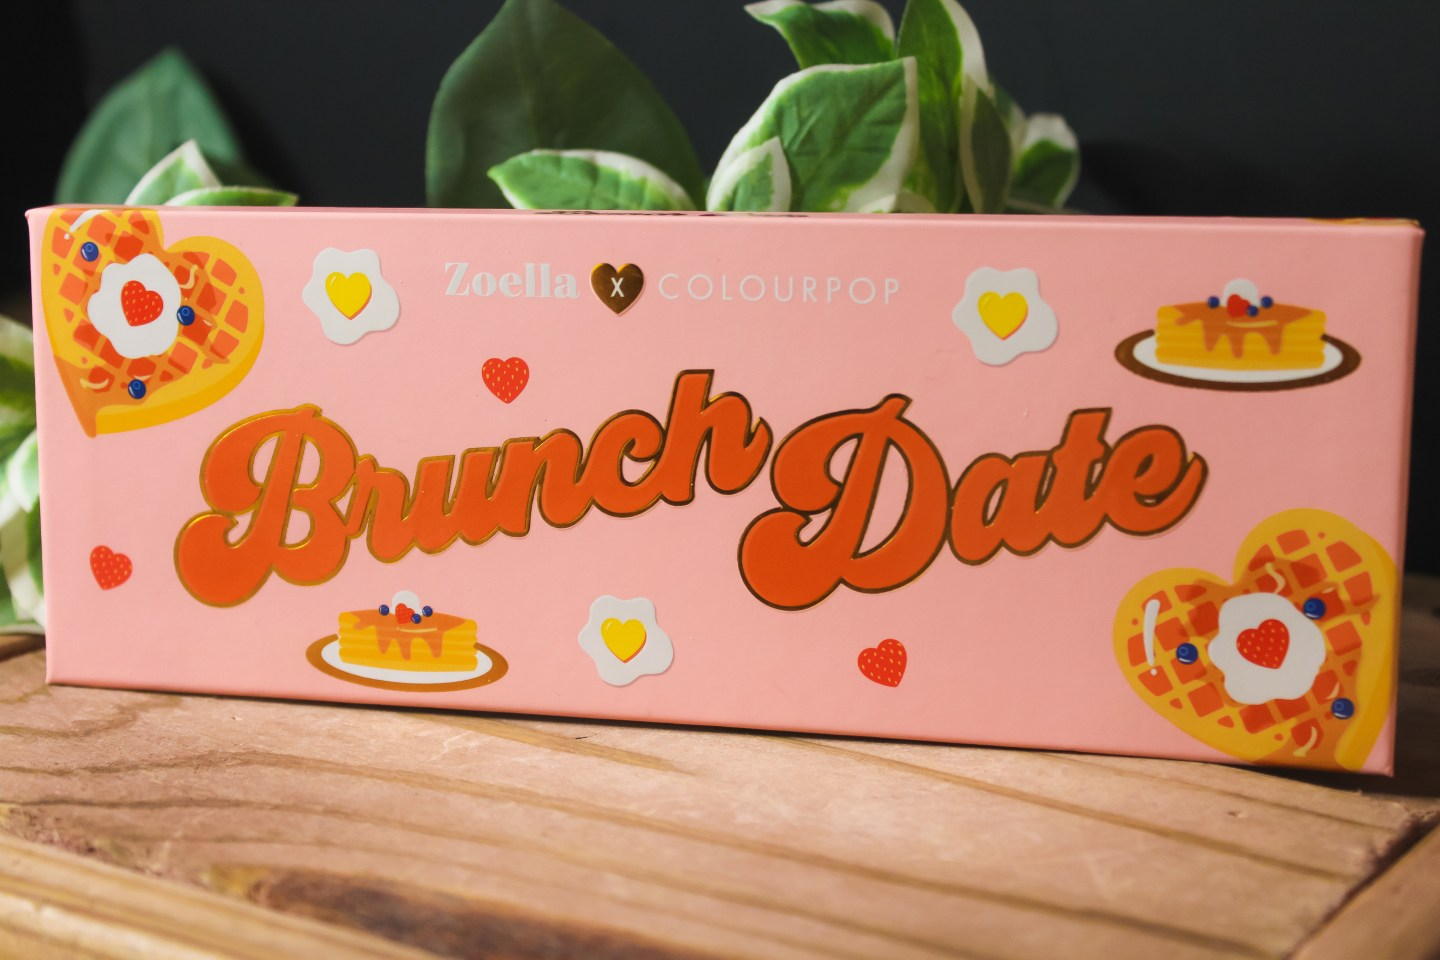 ColourPop x Zoella Brunch Date Collection Review & Swatches 8